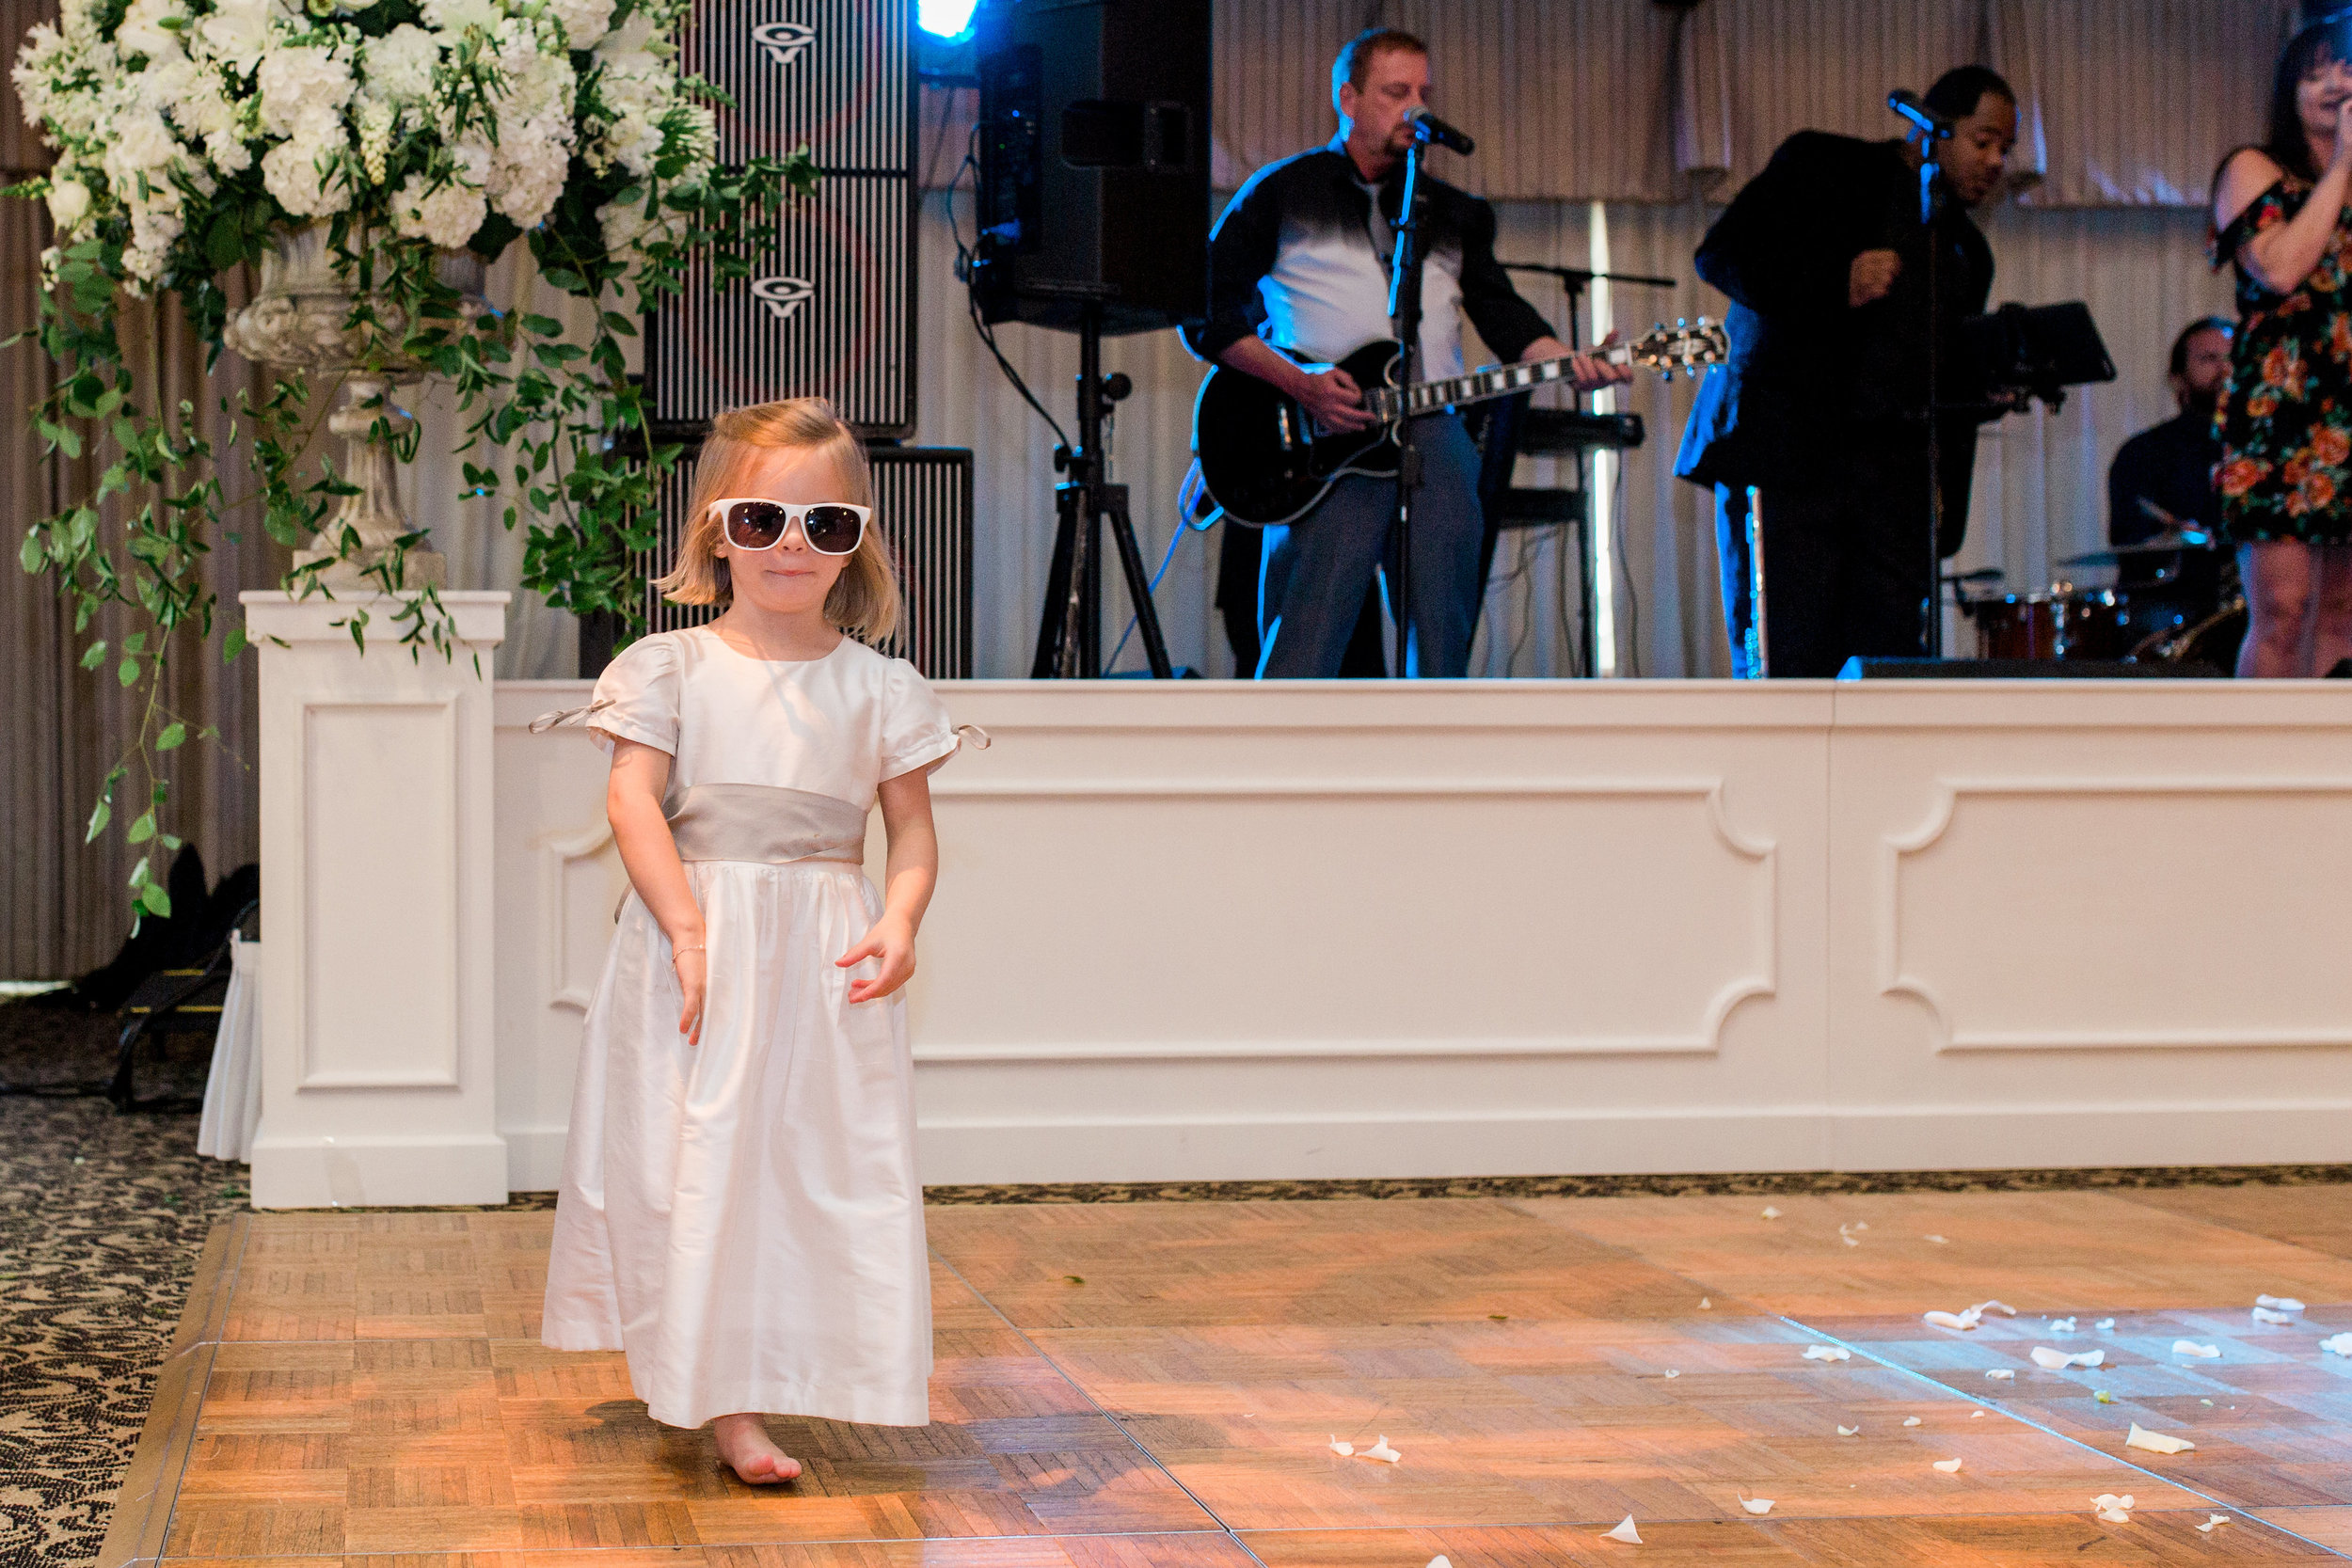 Our flower girl was READY to dance!